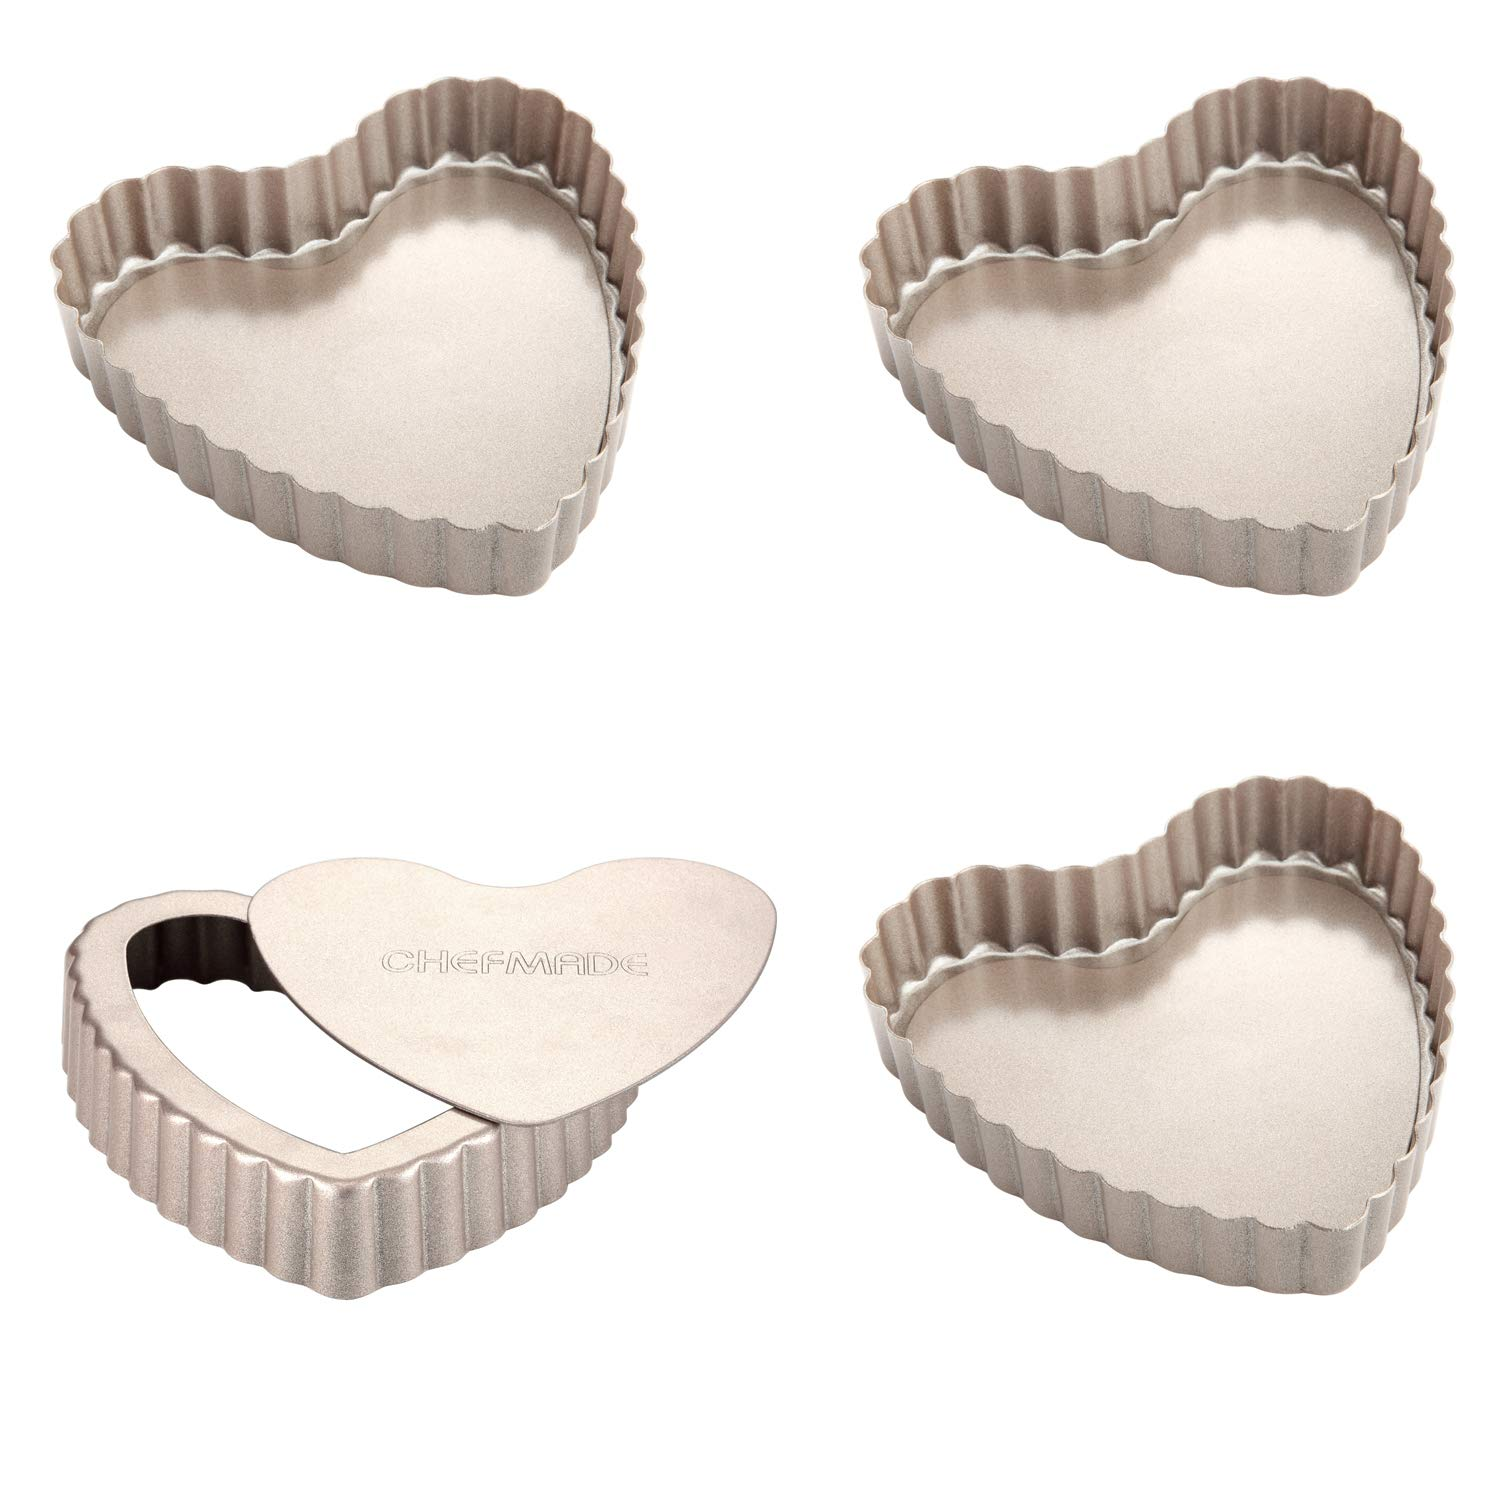 CHEFMADE Mini Heart-shaped Quiche Pan Set with Removable Loose Bottom, 4PCS 4-Inch Non-stick Carbon Steel Tart pan, FDA Approved for Oven Baking (Champagne Gold)